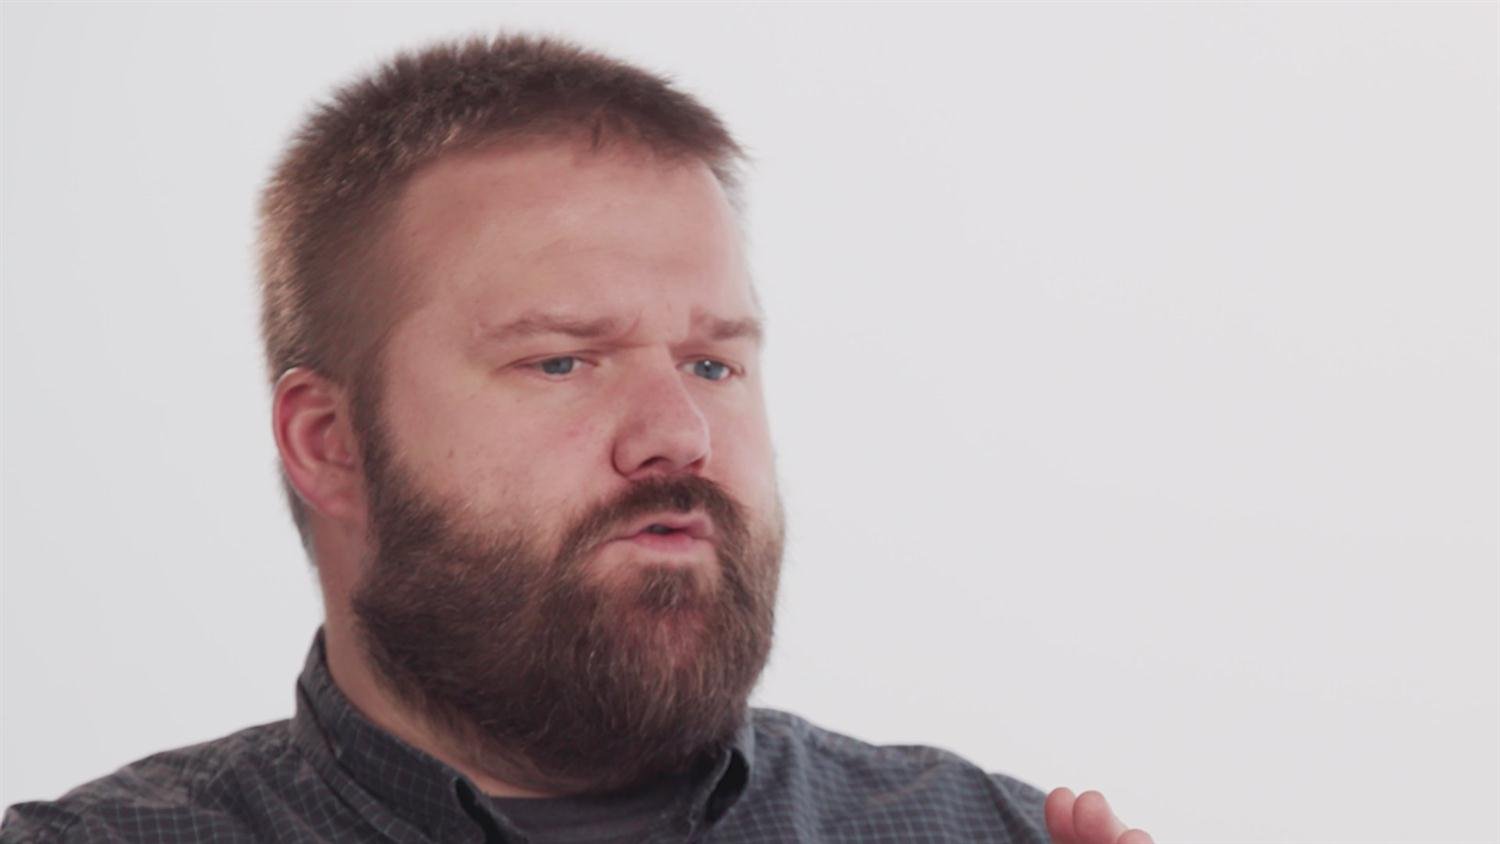 Robert Kirkman On The End of Comic Book Invincible